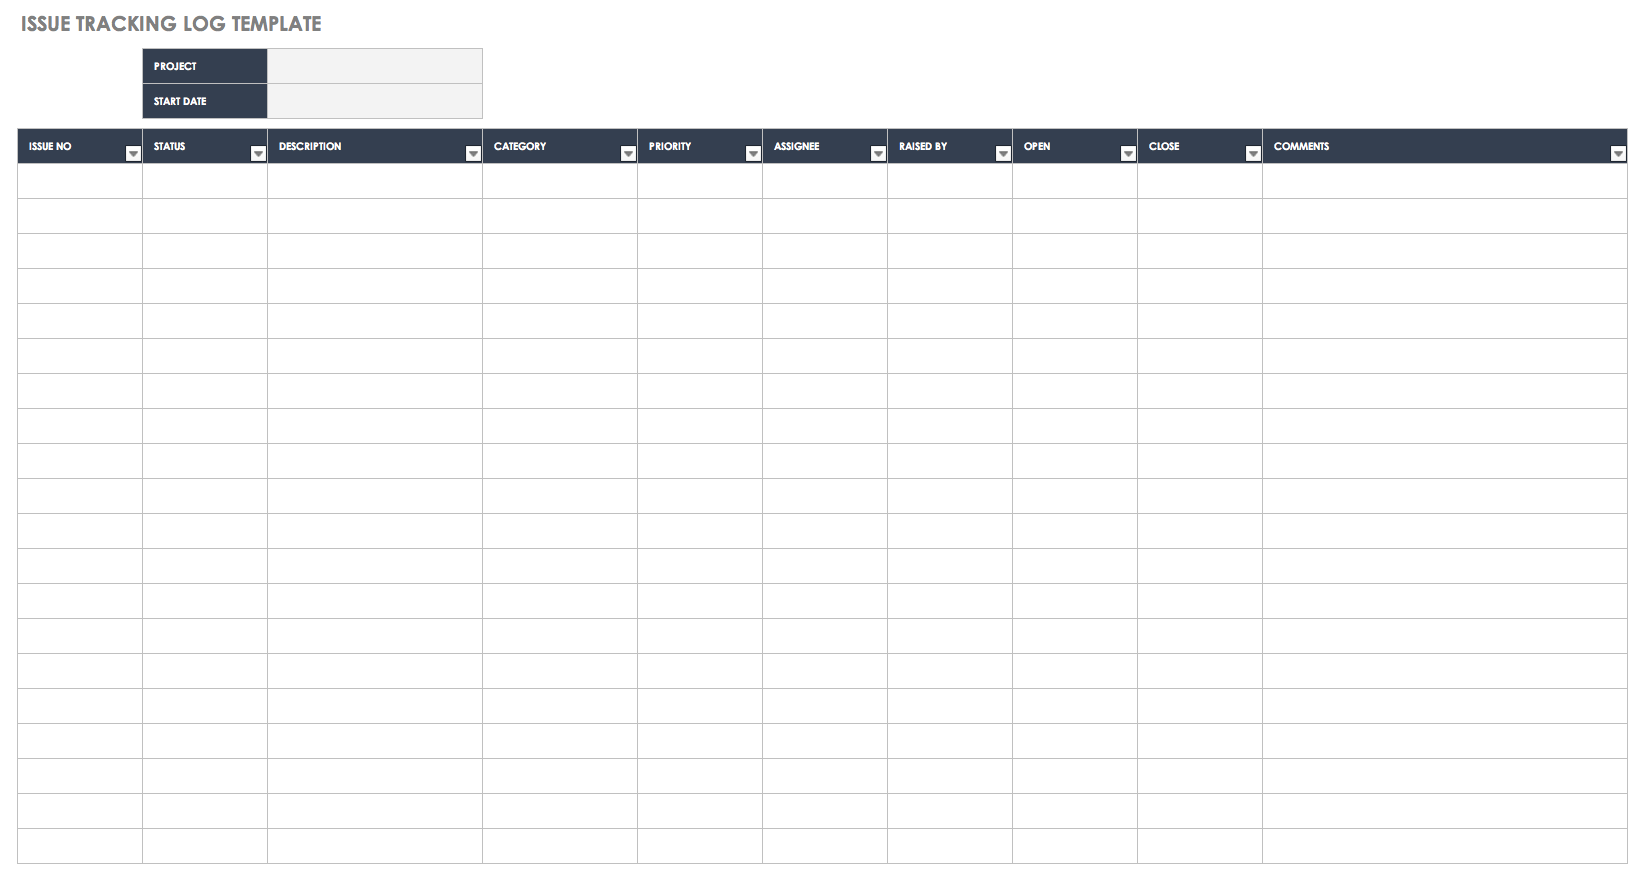 Issue Tracking Log Template